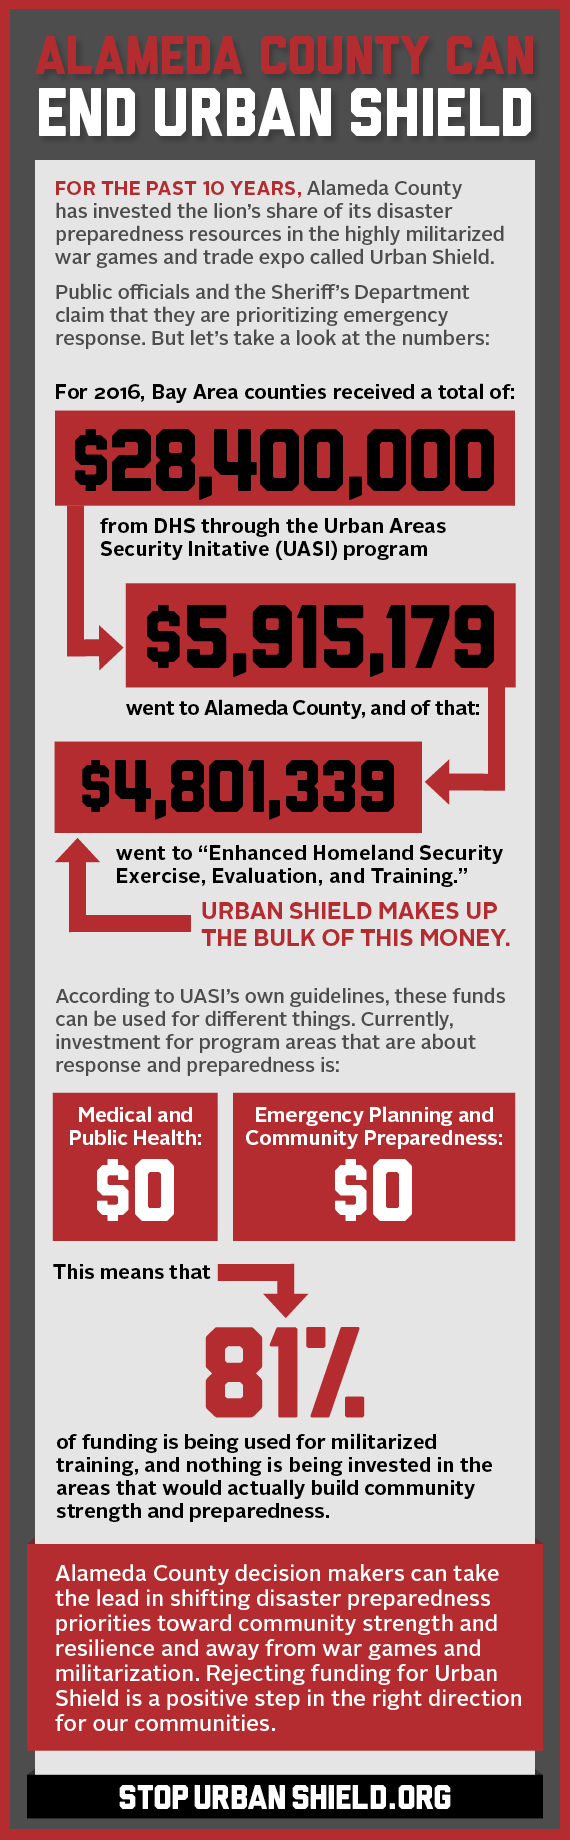 end-urban-shield-infographic